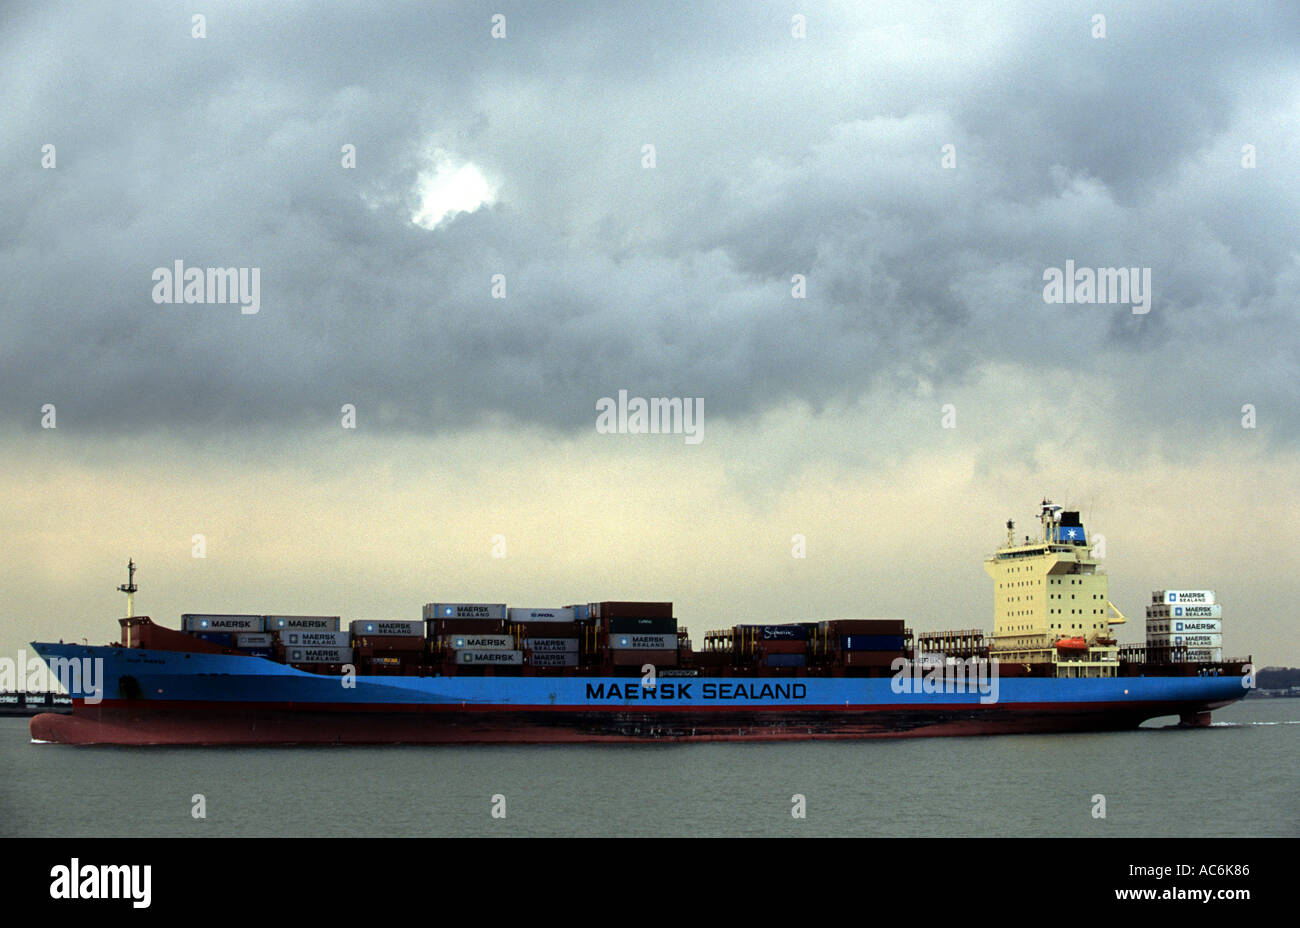 Maersk Sealand container ship 'Oluf', Port of Felixstowe, Suffolk, UK. - Stock Image